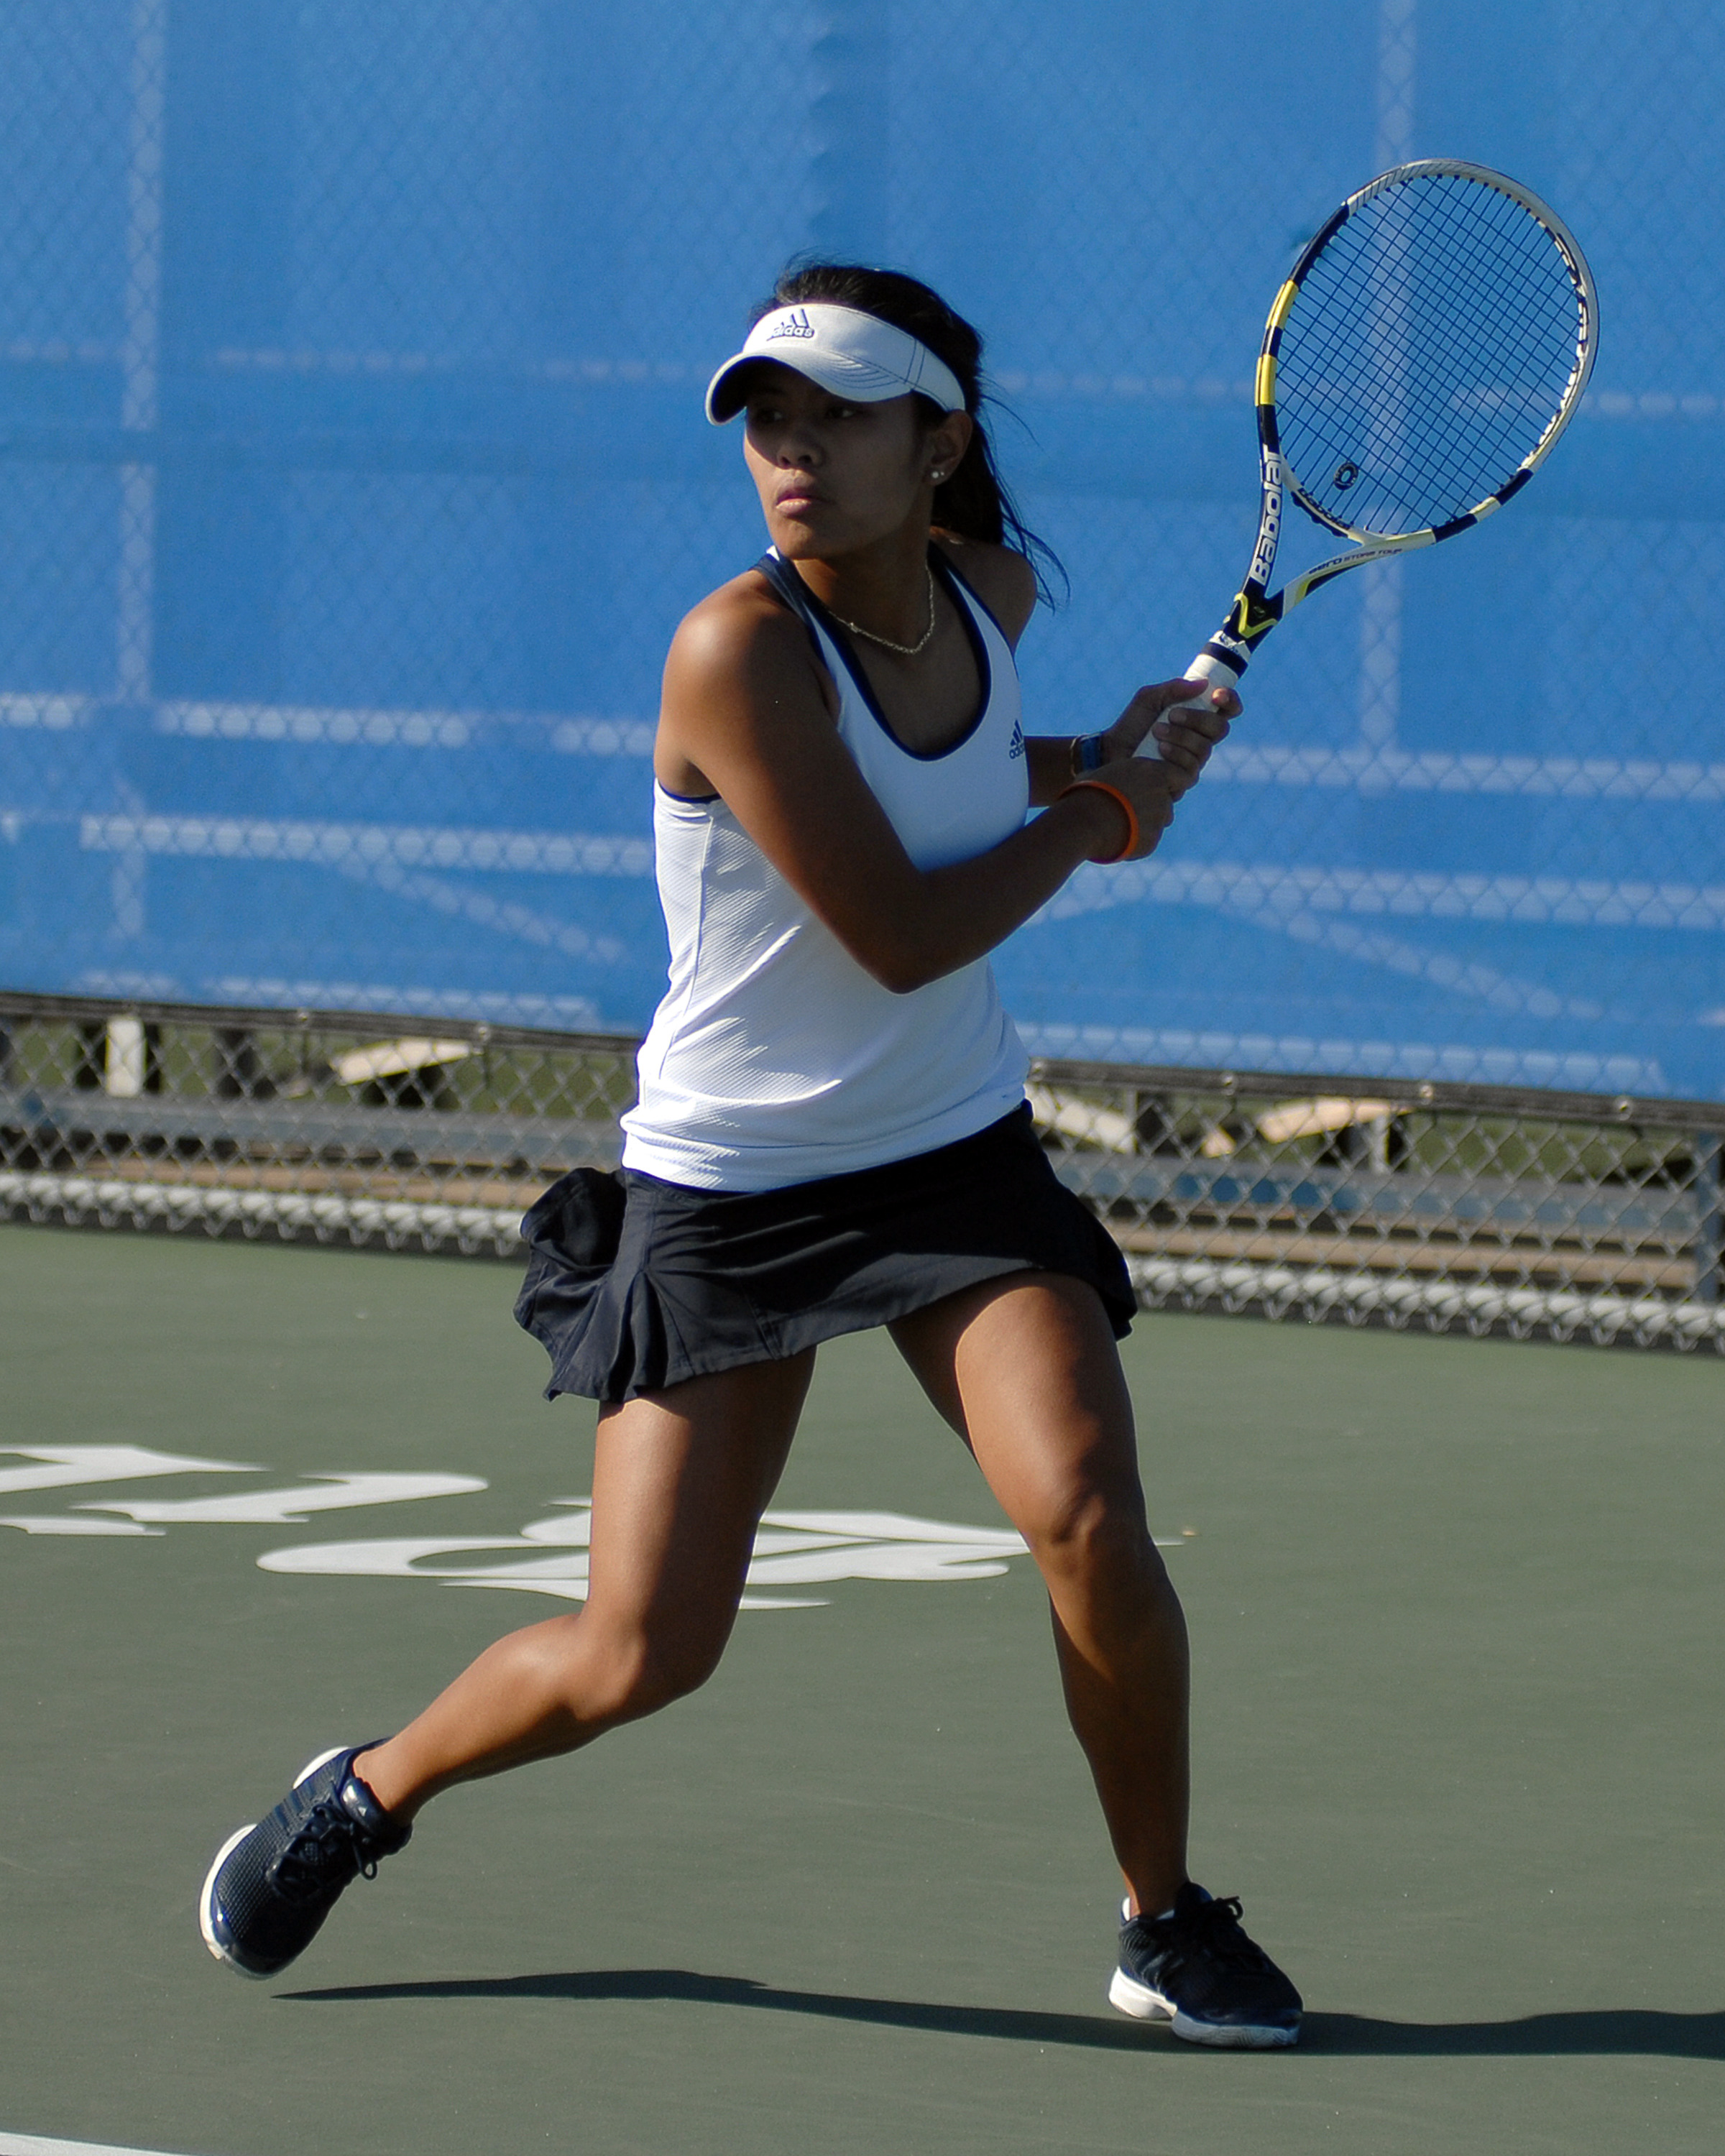 Kim Anicete won her 93rd career match on Friday